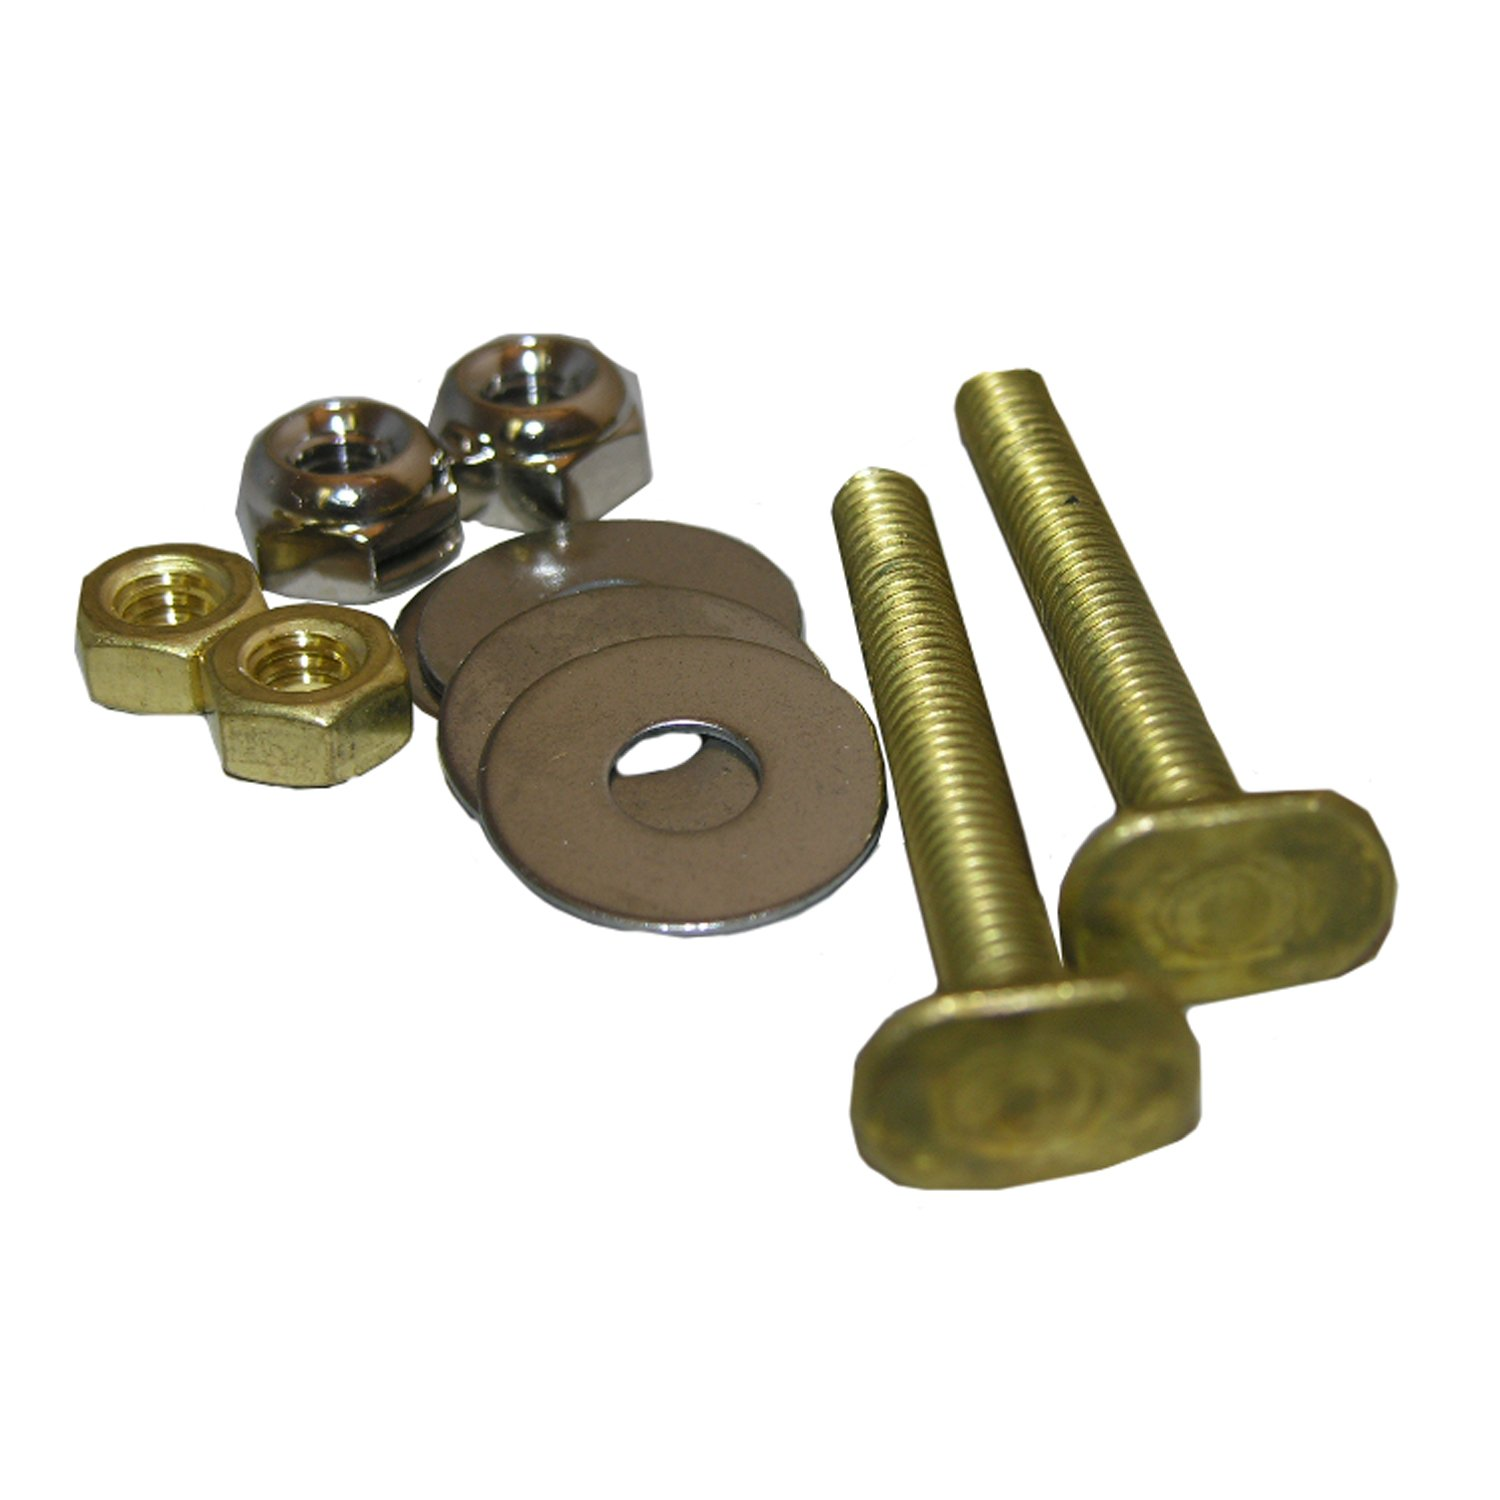 LASCO 04-3637-MASTER 634519 Code Approved Acorn Nuts and Stainless Steel Washers Toilet Bolts, 1/4'' x 2-1/4'' by LASCO